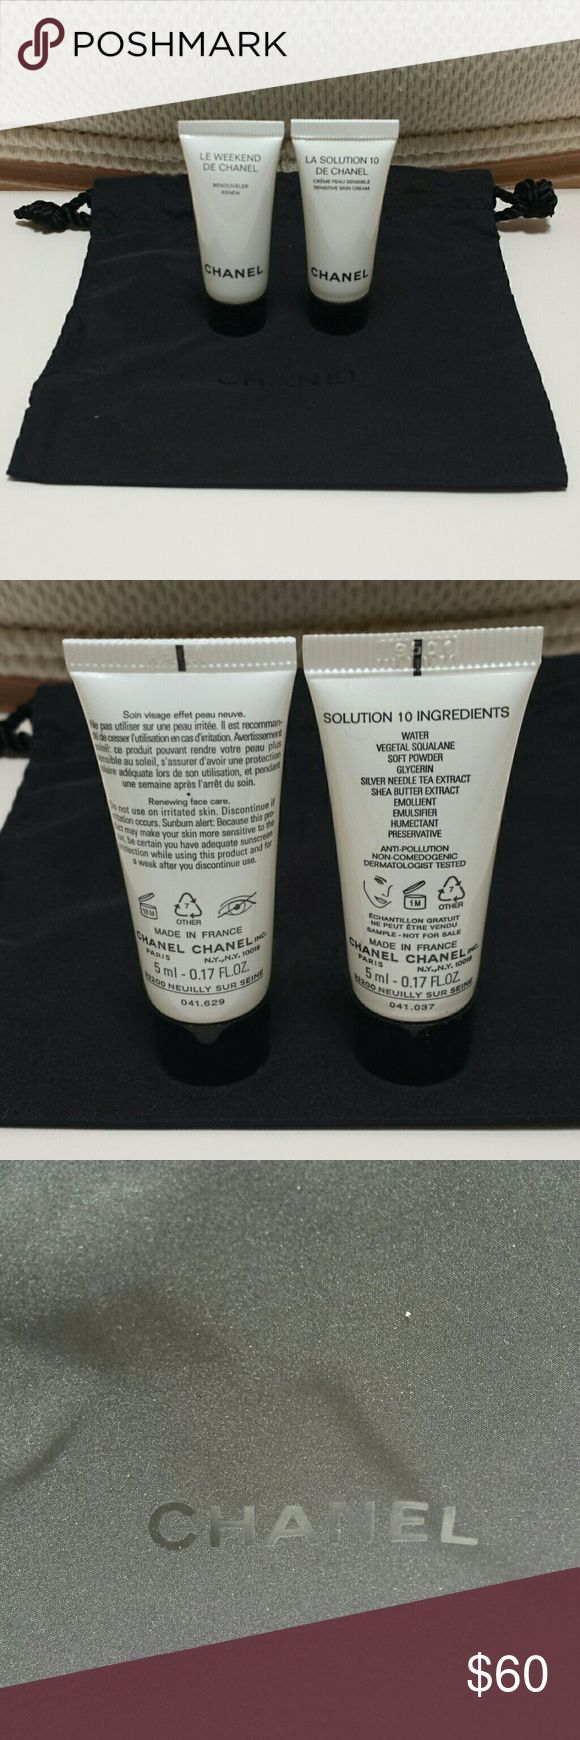 Chanel Skincare Duo - La Solution 10 DE Chanel .17 oz - Le Weekend DE Chanel .17 oz - Dust Bag  Both are new and never opened.   No trades.   Please submit any offers through the offer option. CHANEL Makeup